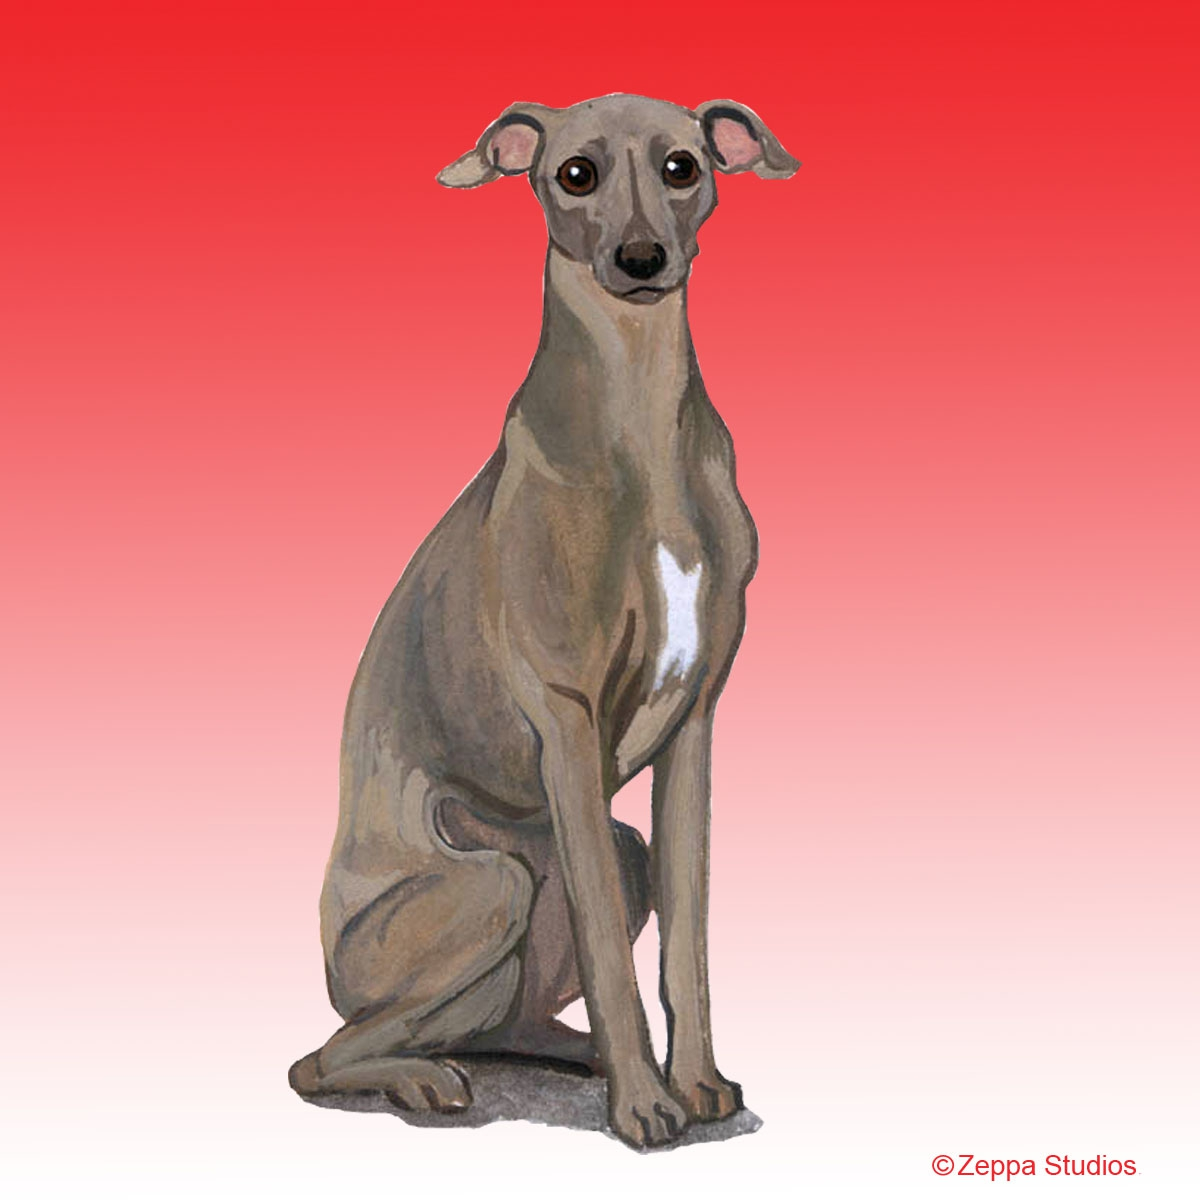 Italian Greyhound Gifts